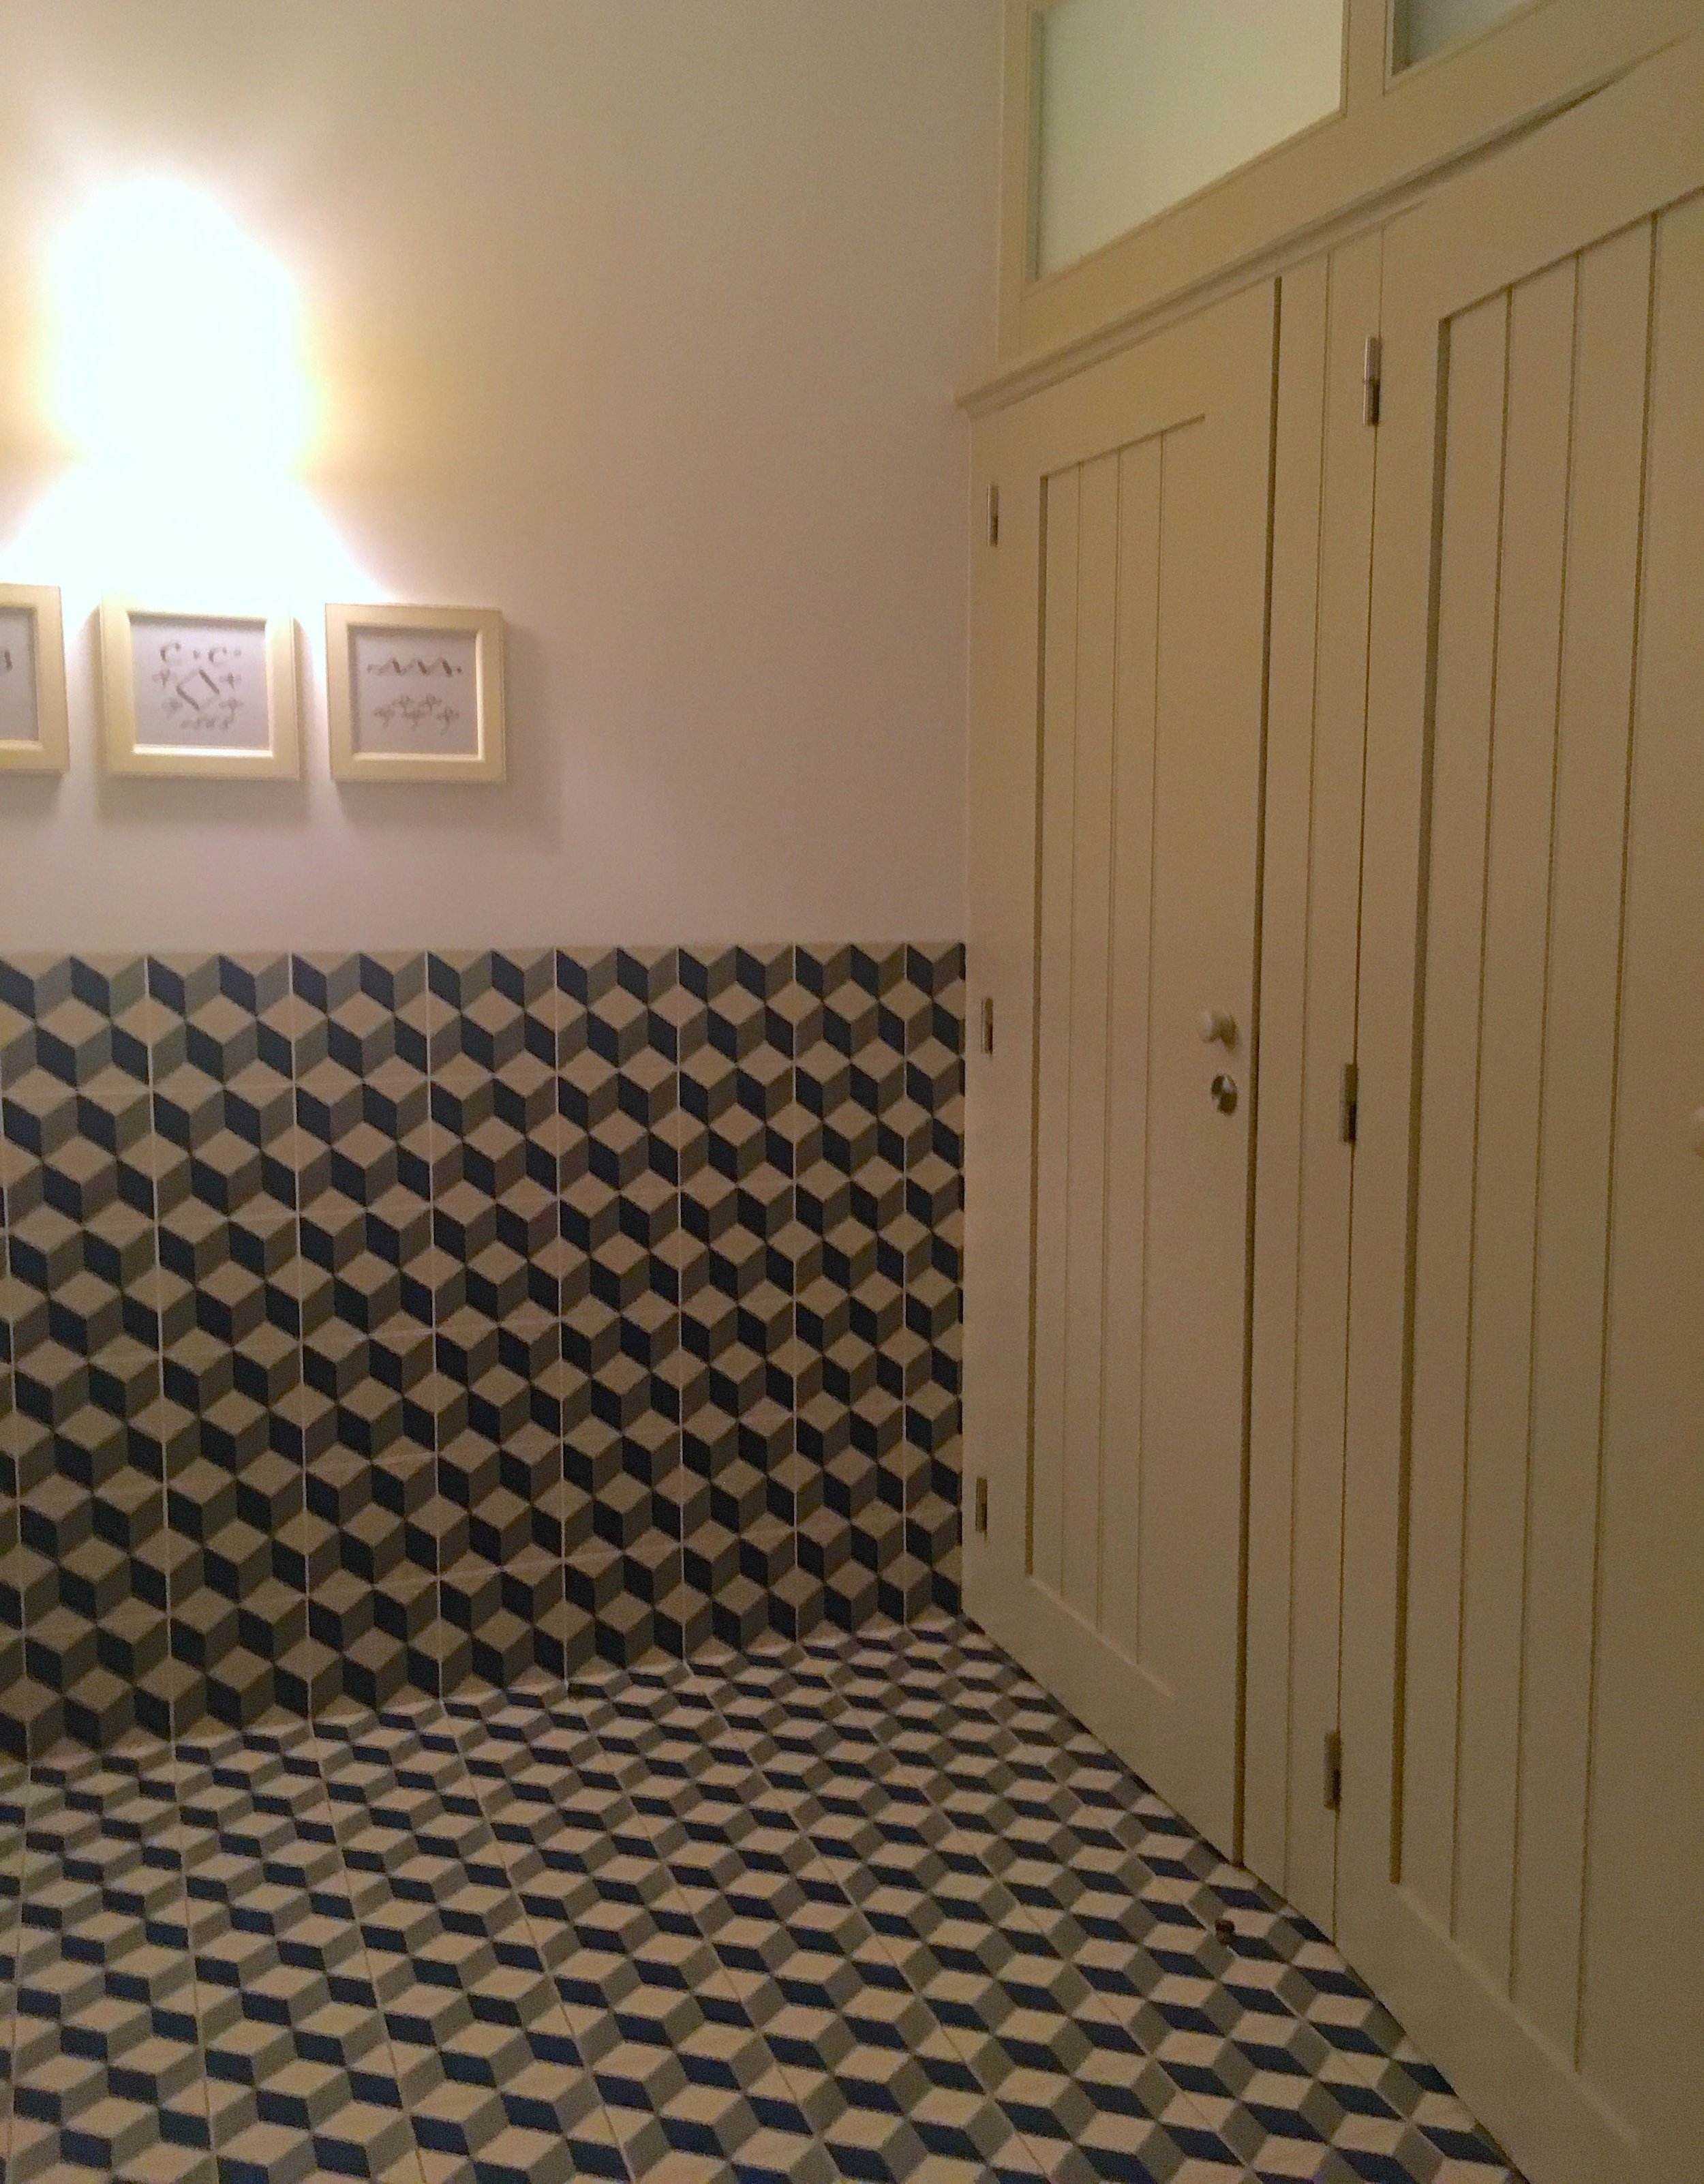 Tiled walls, tiled floors and panelled doors